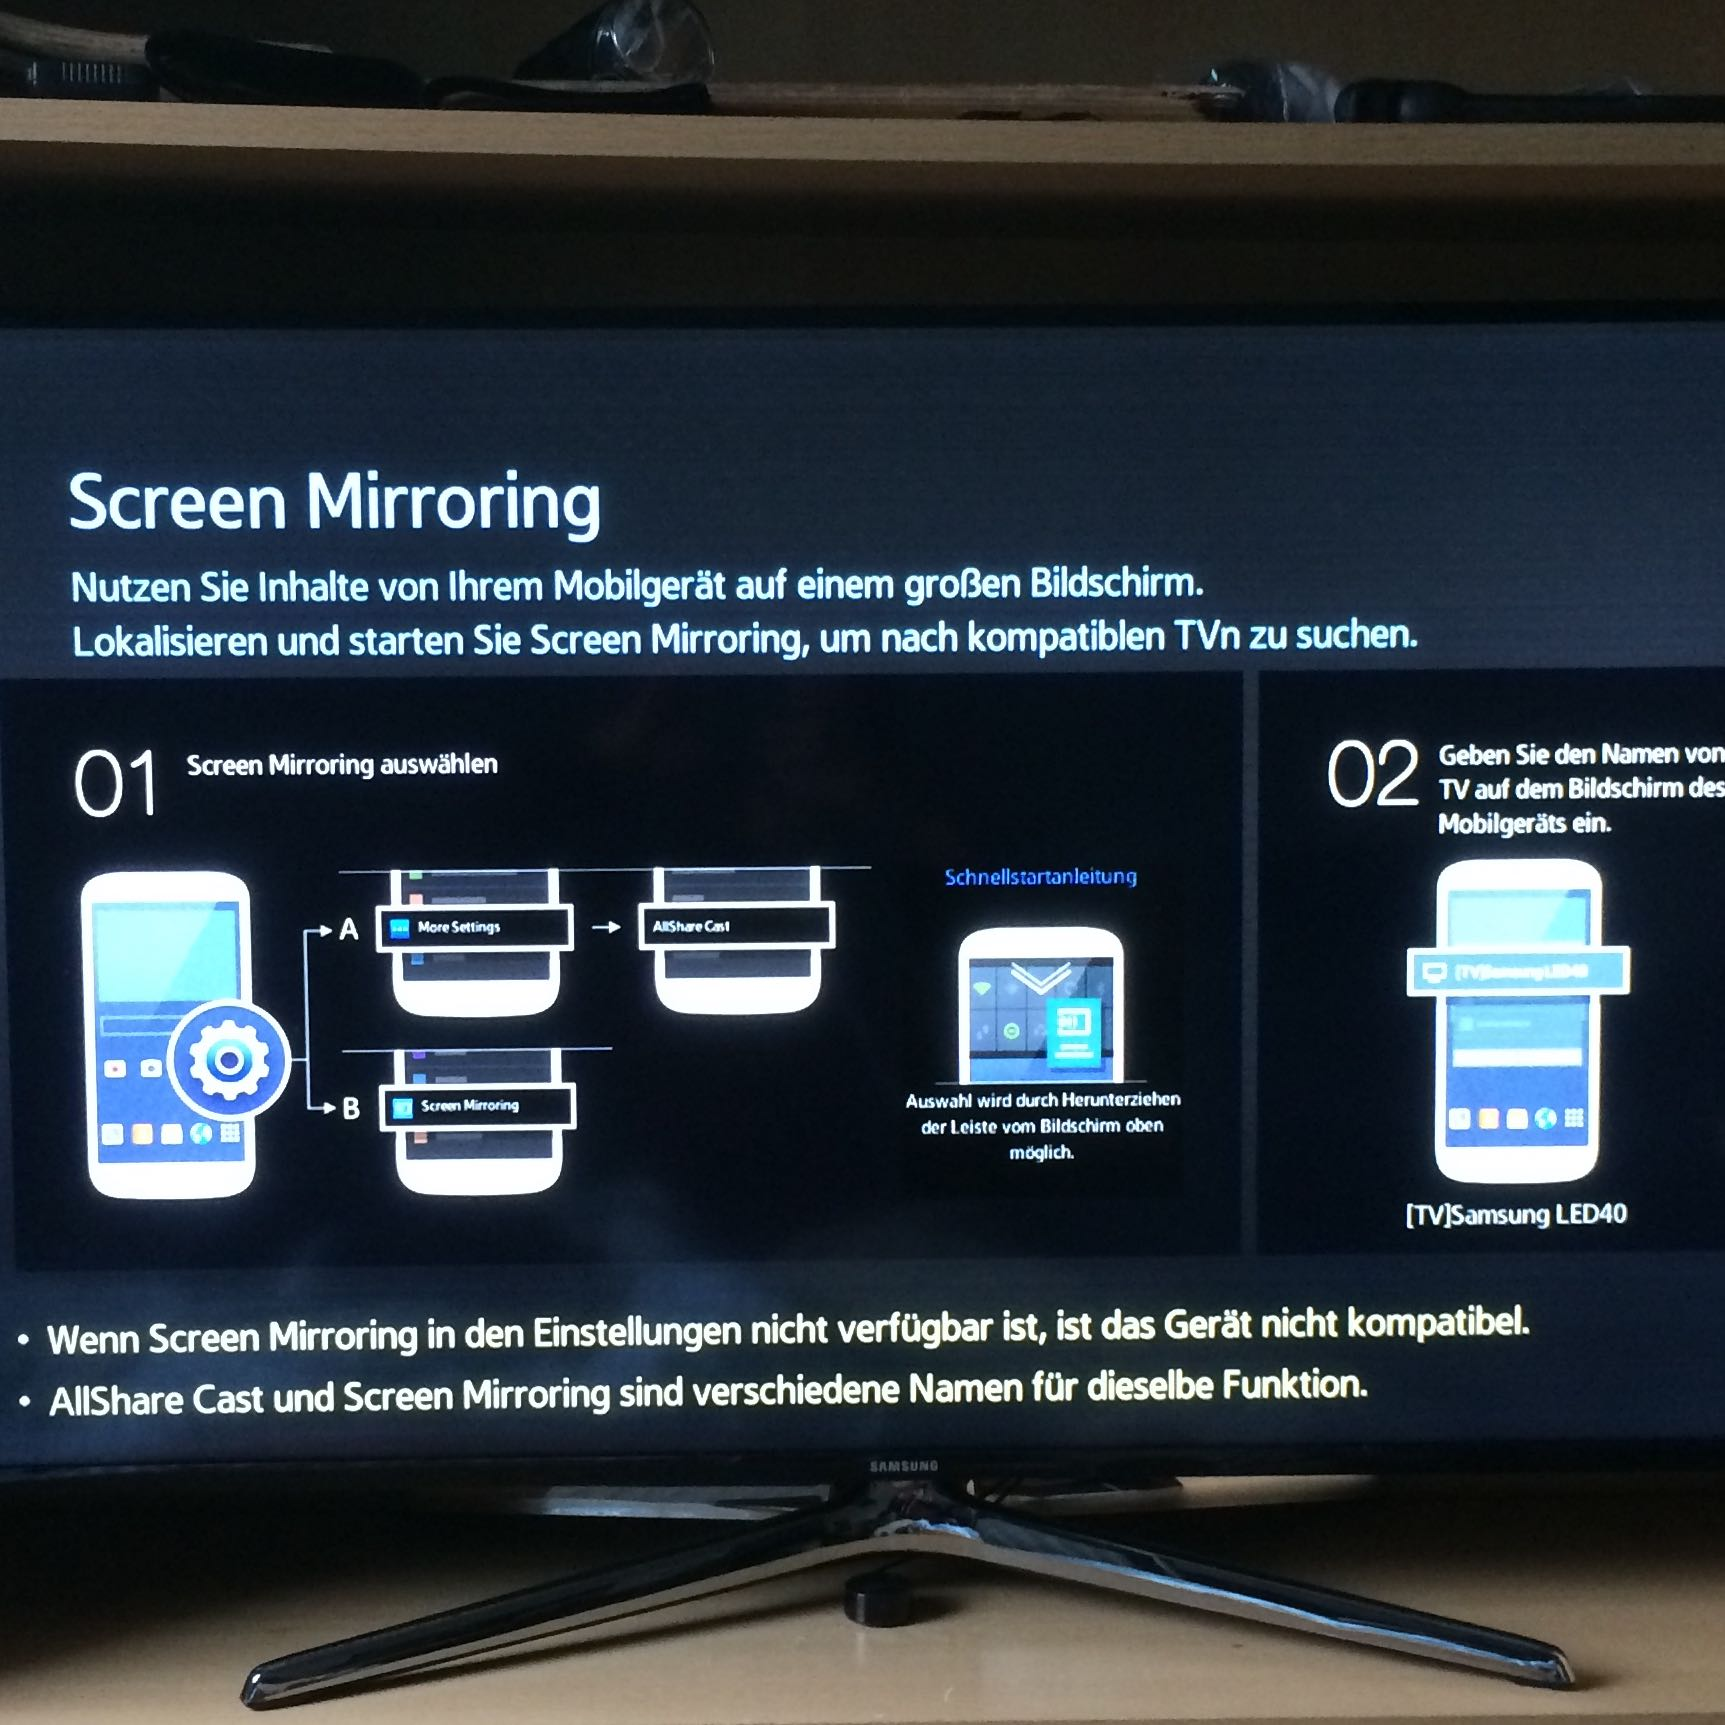 Screen mirroring mit iphone apple samsung tv - Mirror screen ...